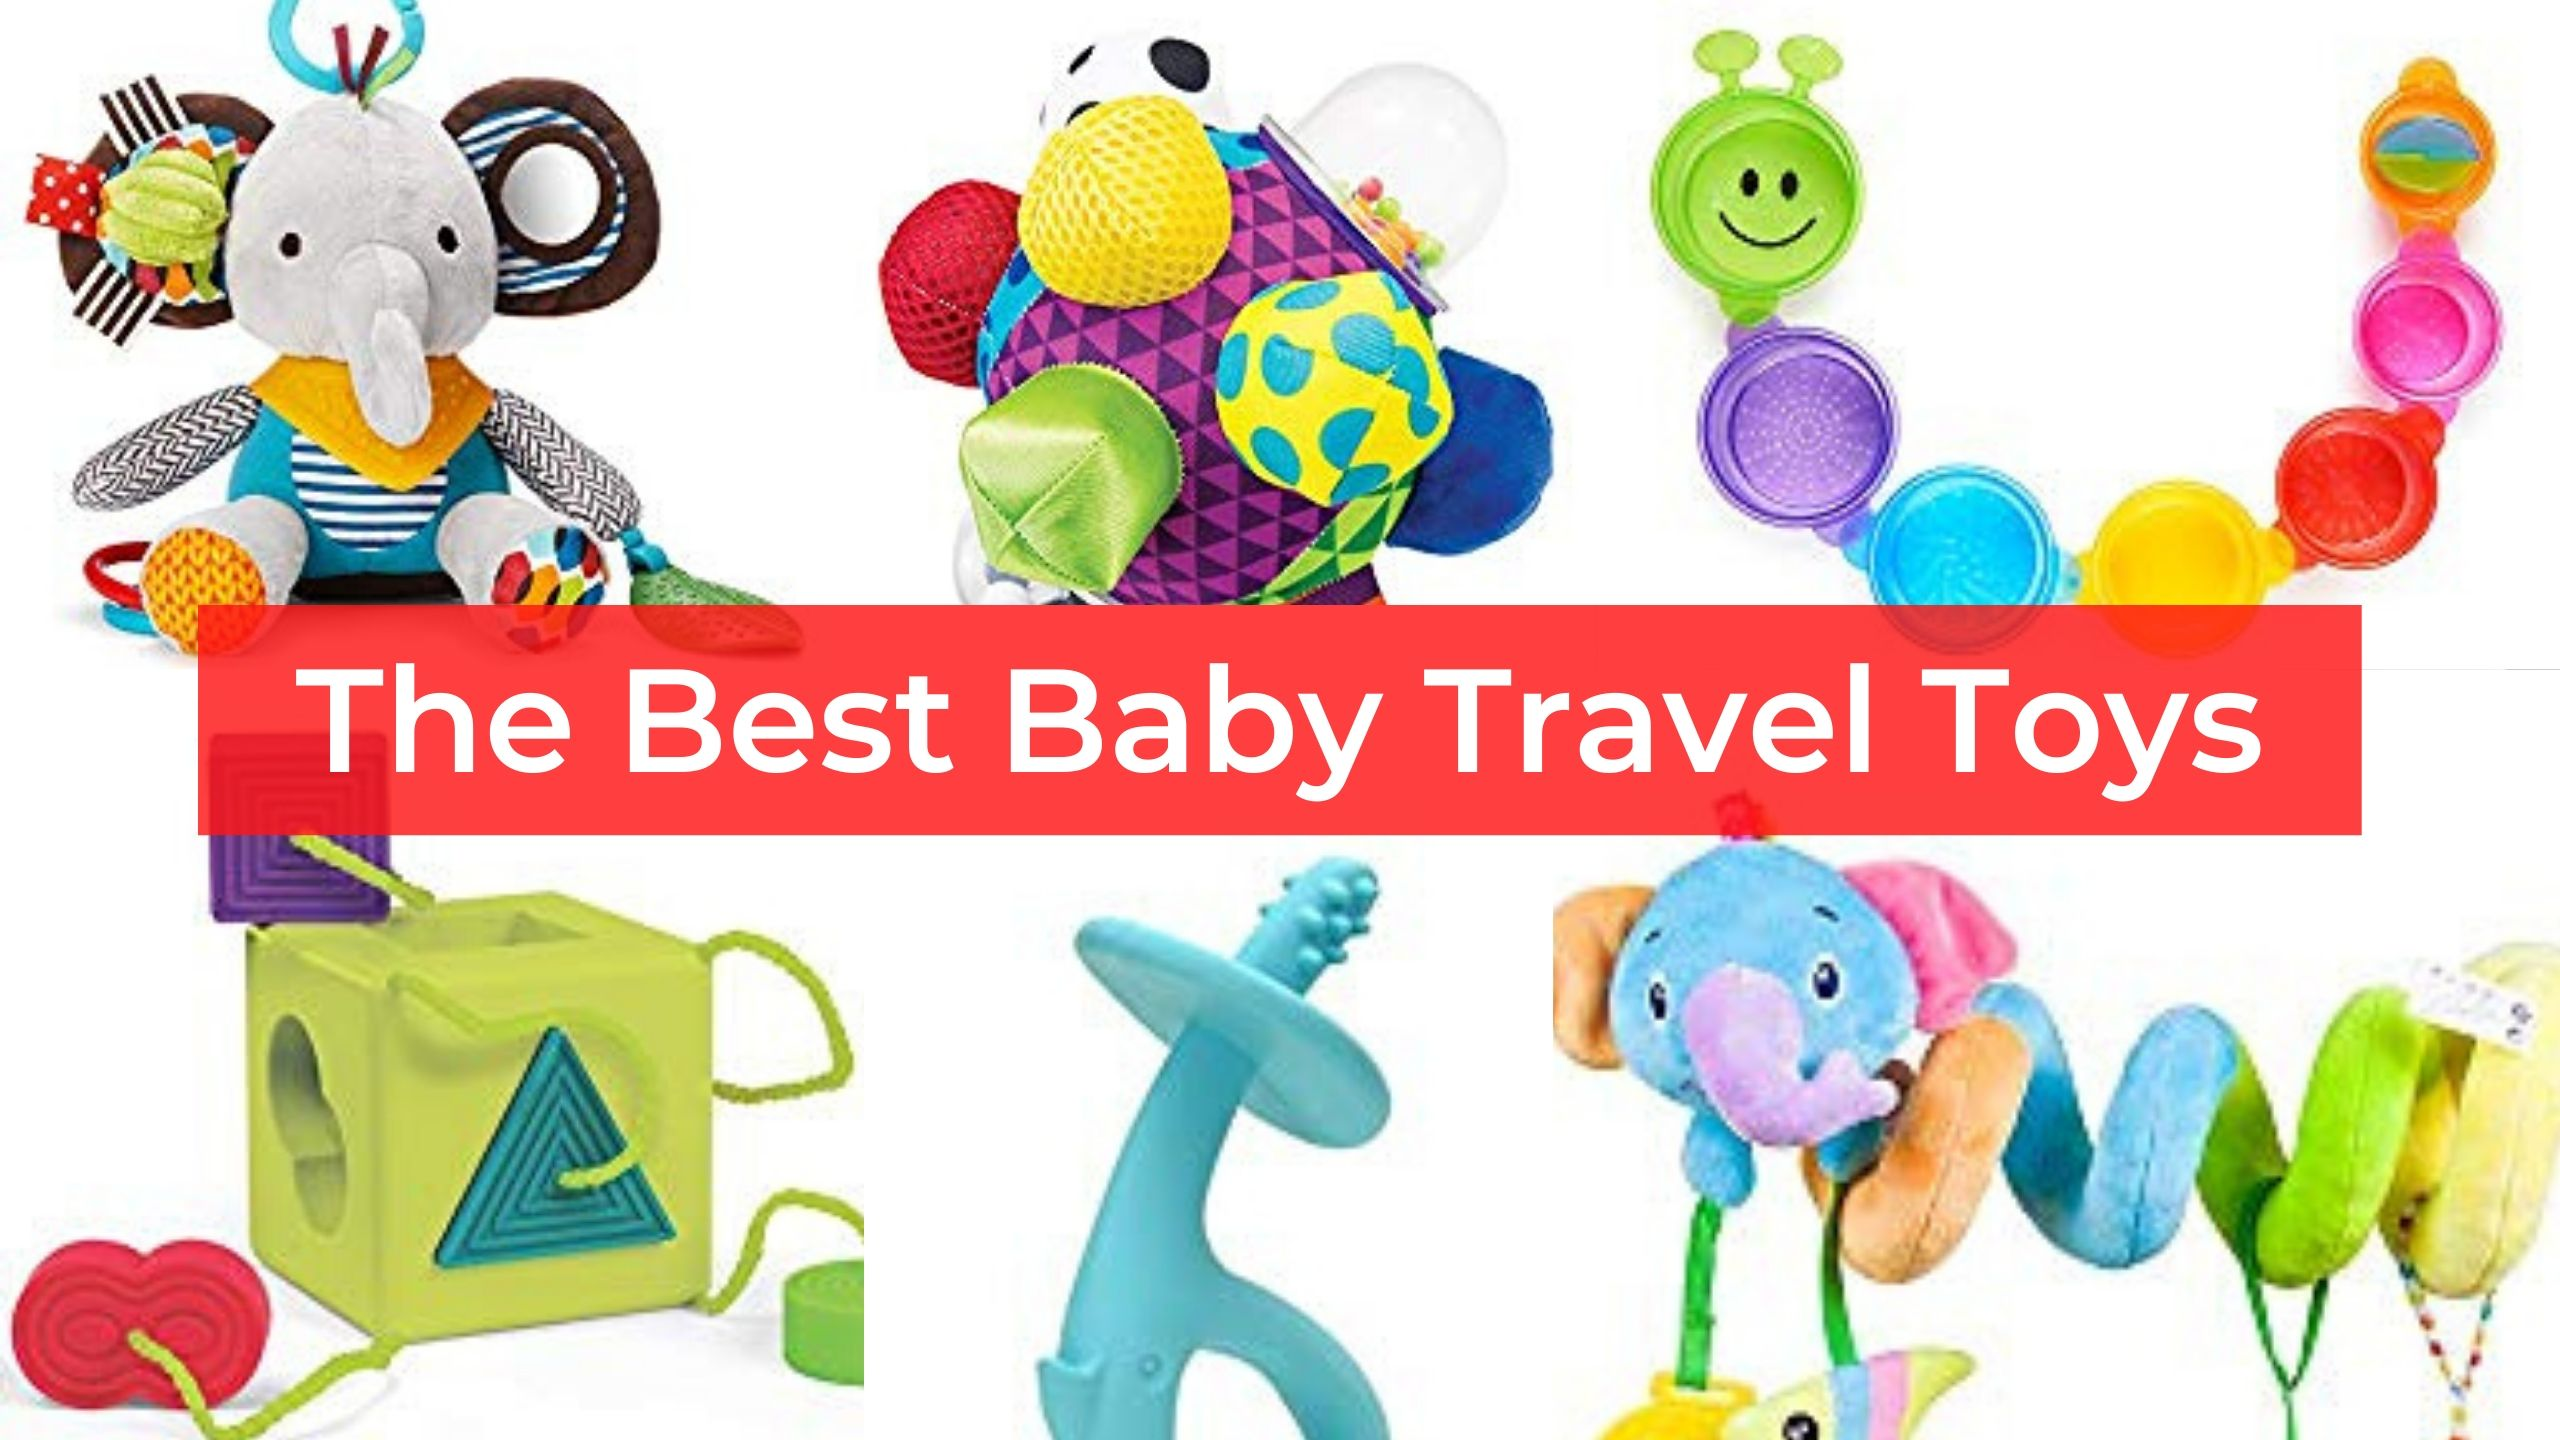 baby travel toys - the best travel toys for babies